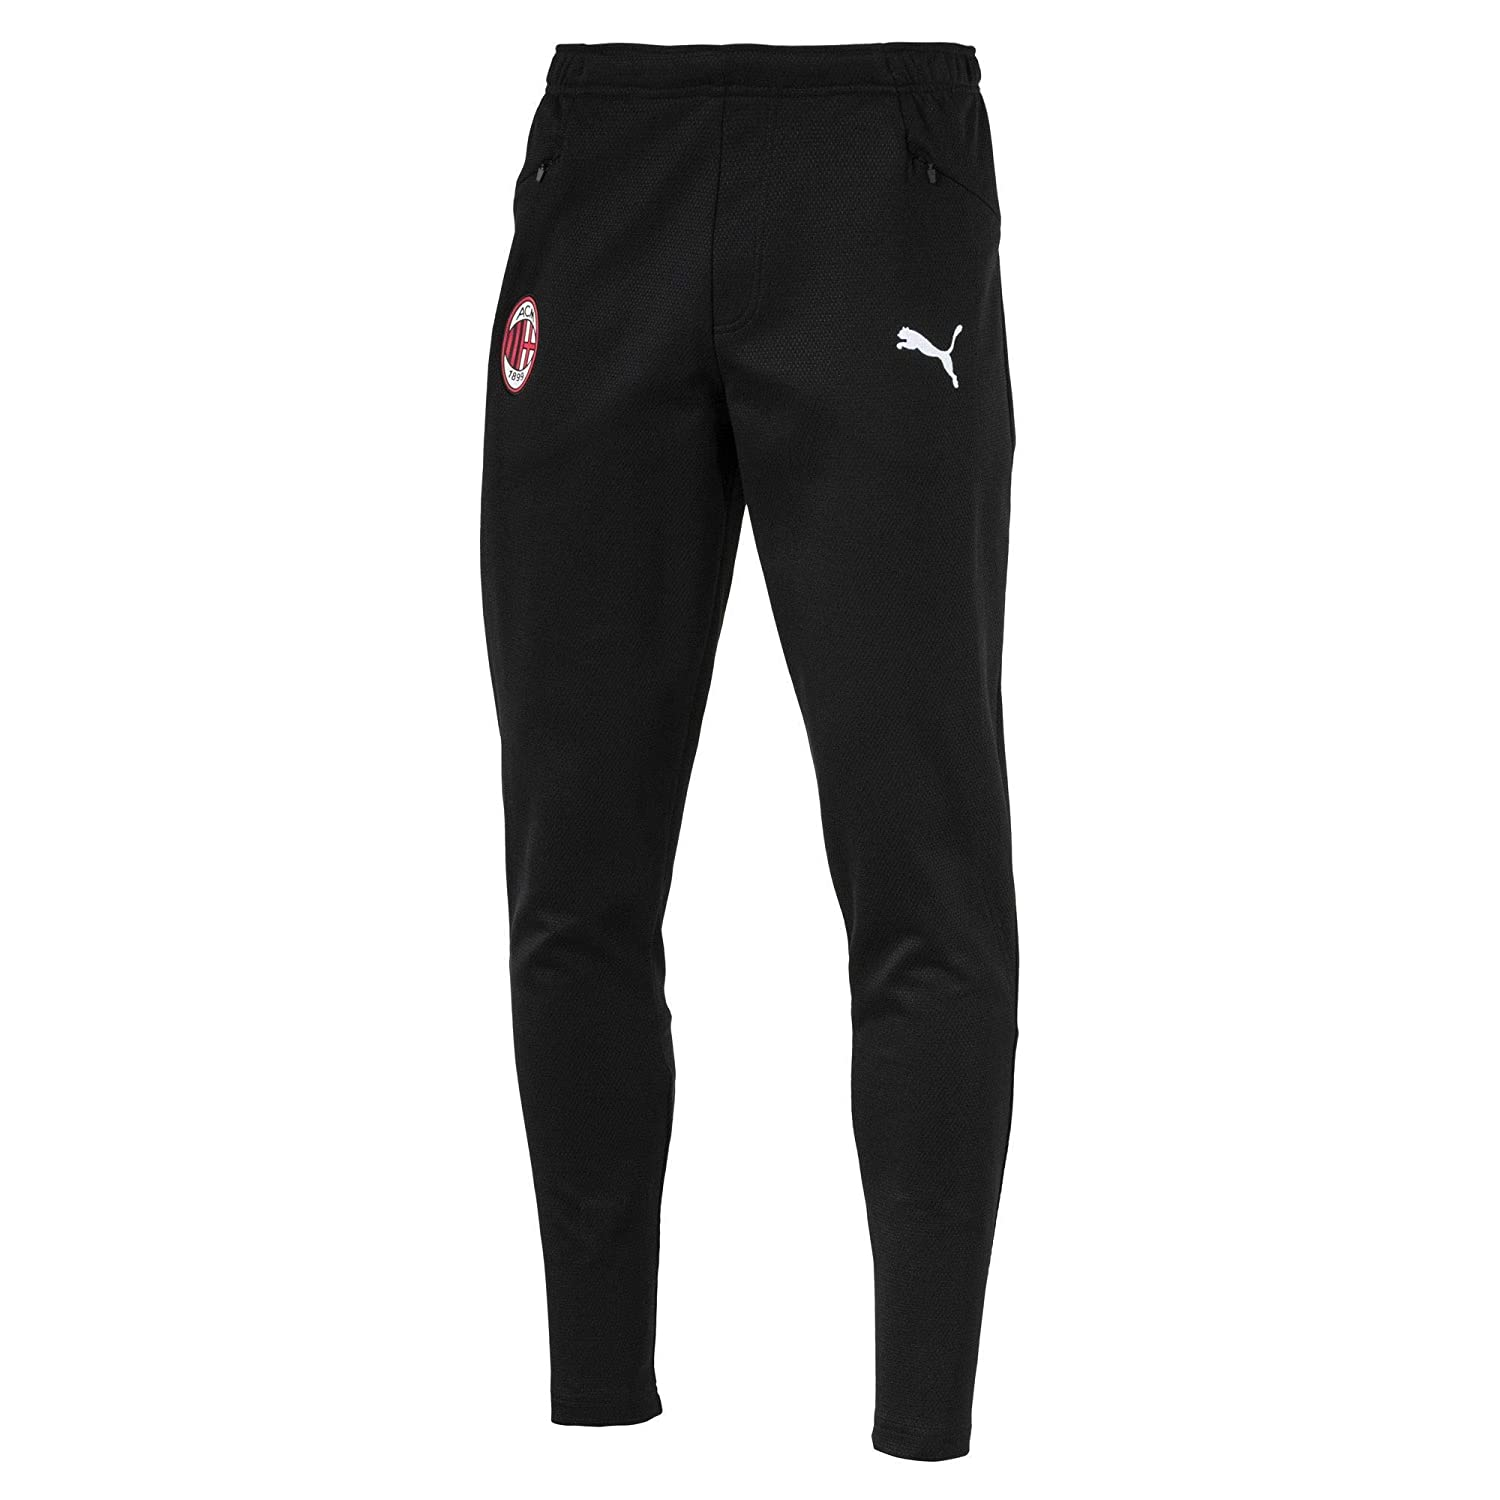 Puma Herren Ac Milan Casual Performance mit Zipped Pockets Jogginghose